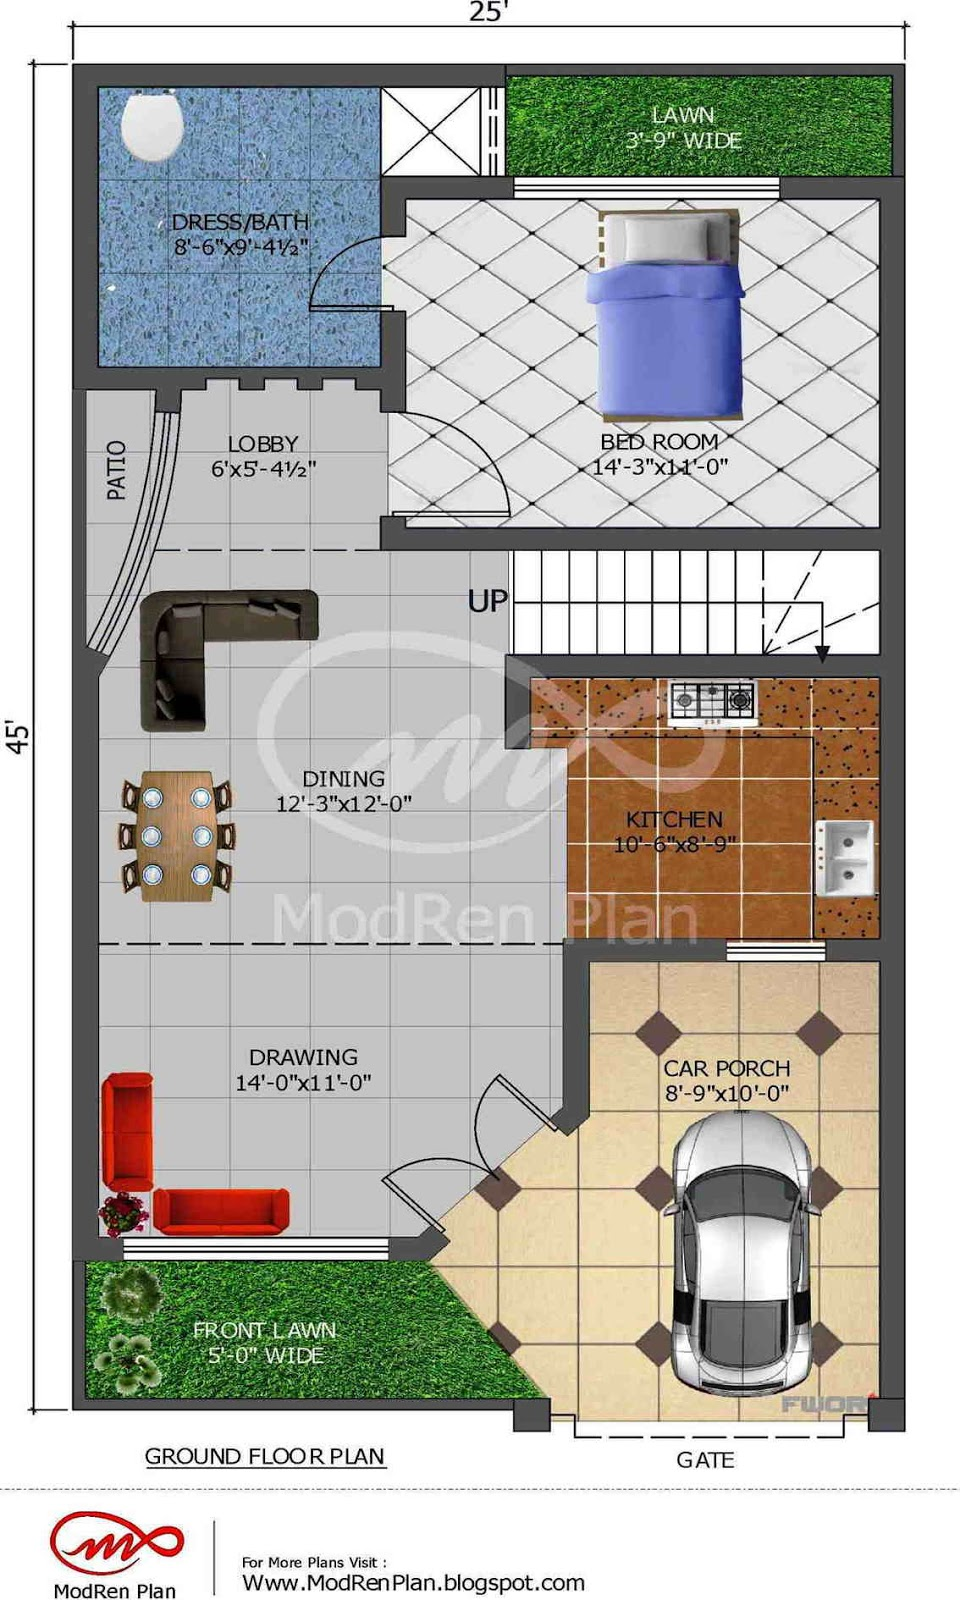 5 marla house plan 1200 sq ft 25x45 feet for Www house design plan com